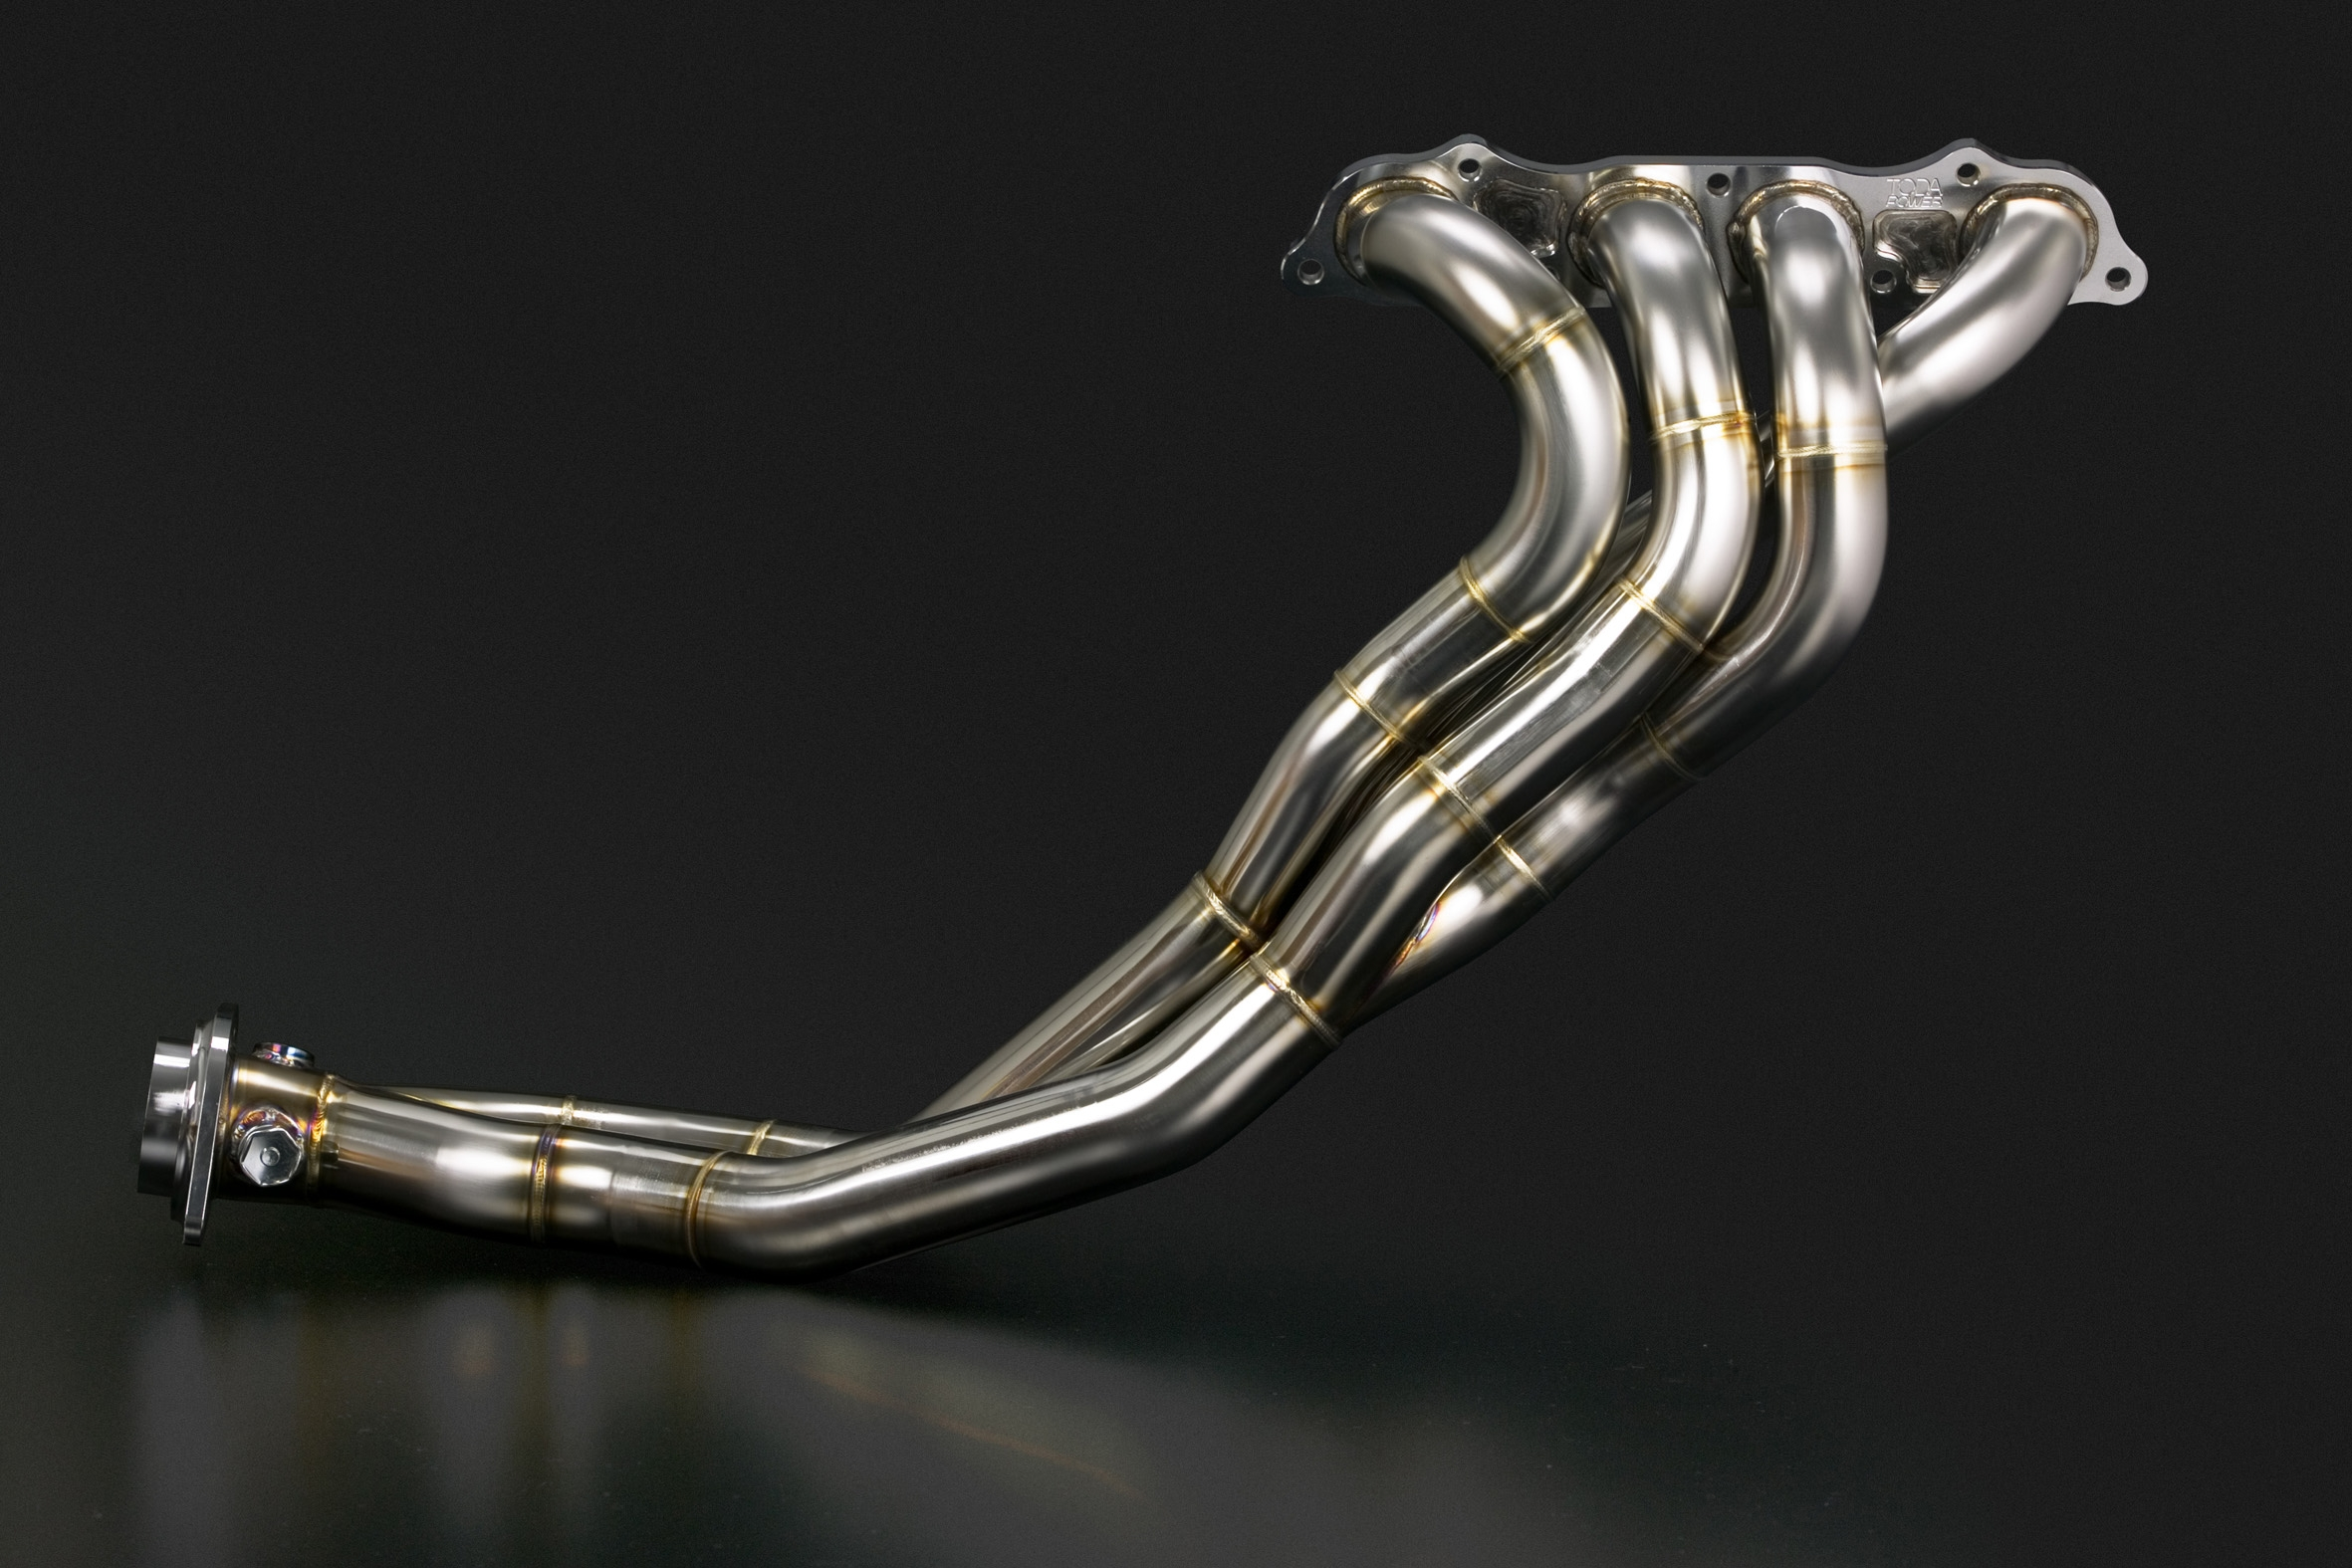 TODA Torquie-kun sports 4-2-1 manifold for the Honda S2000